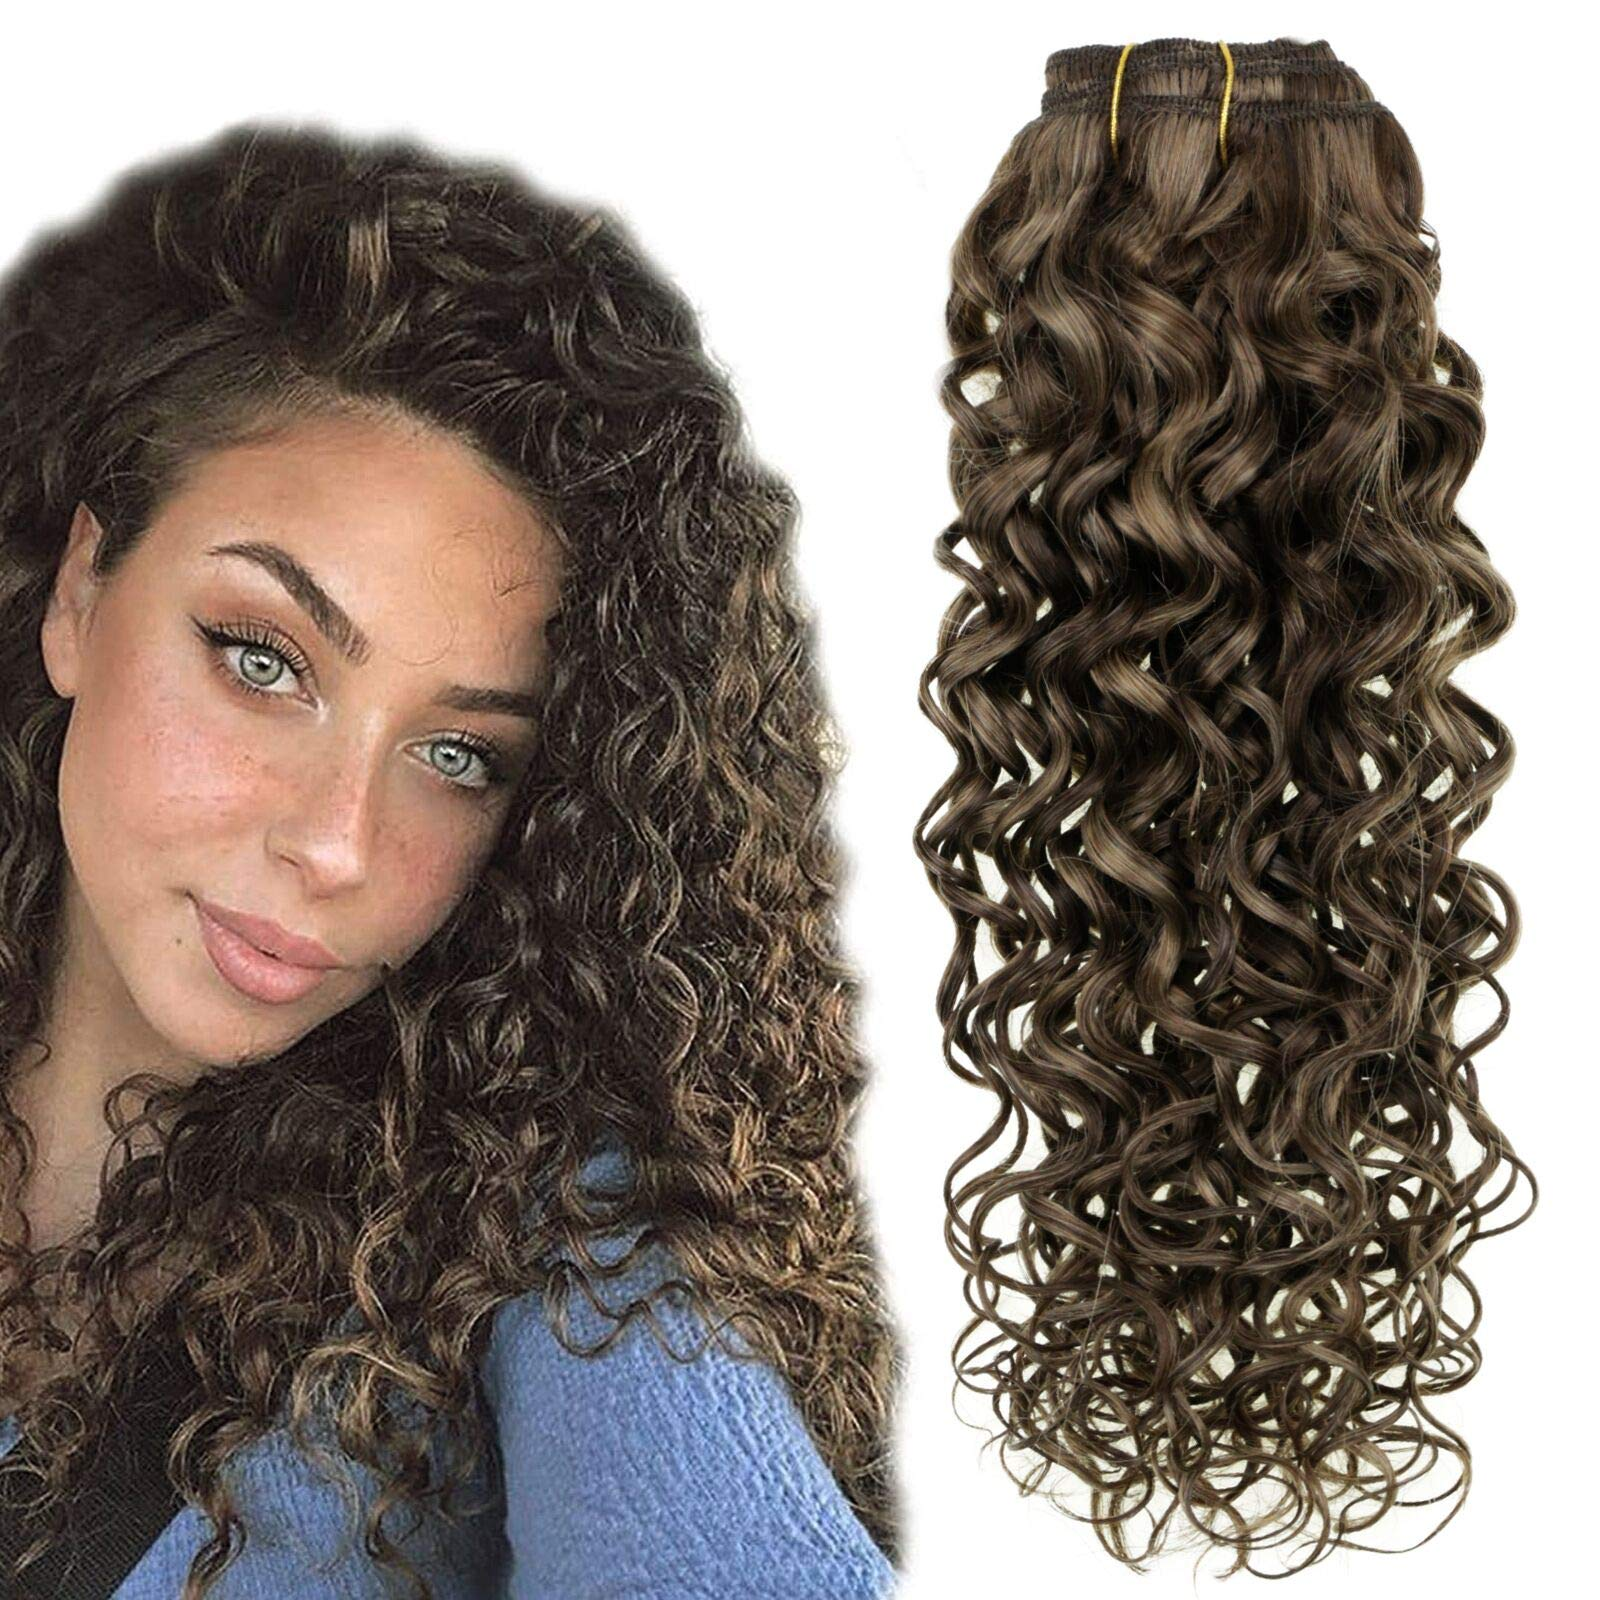 Hetto 14'' Curly Clip in Extensions Human Hair Natural Clip in Hair Extensions Brown Highlighted Hair Extension Clip in Double Wefted Wavy Human Hair Extensions 7Pcs 100g